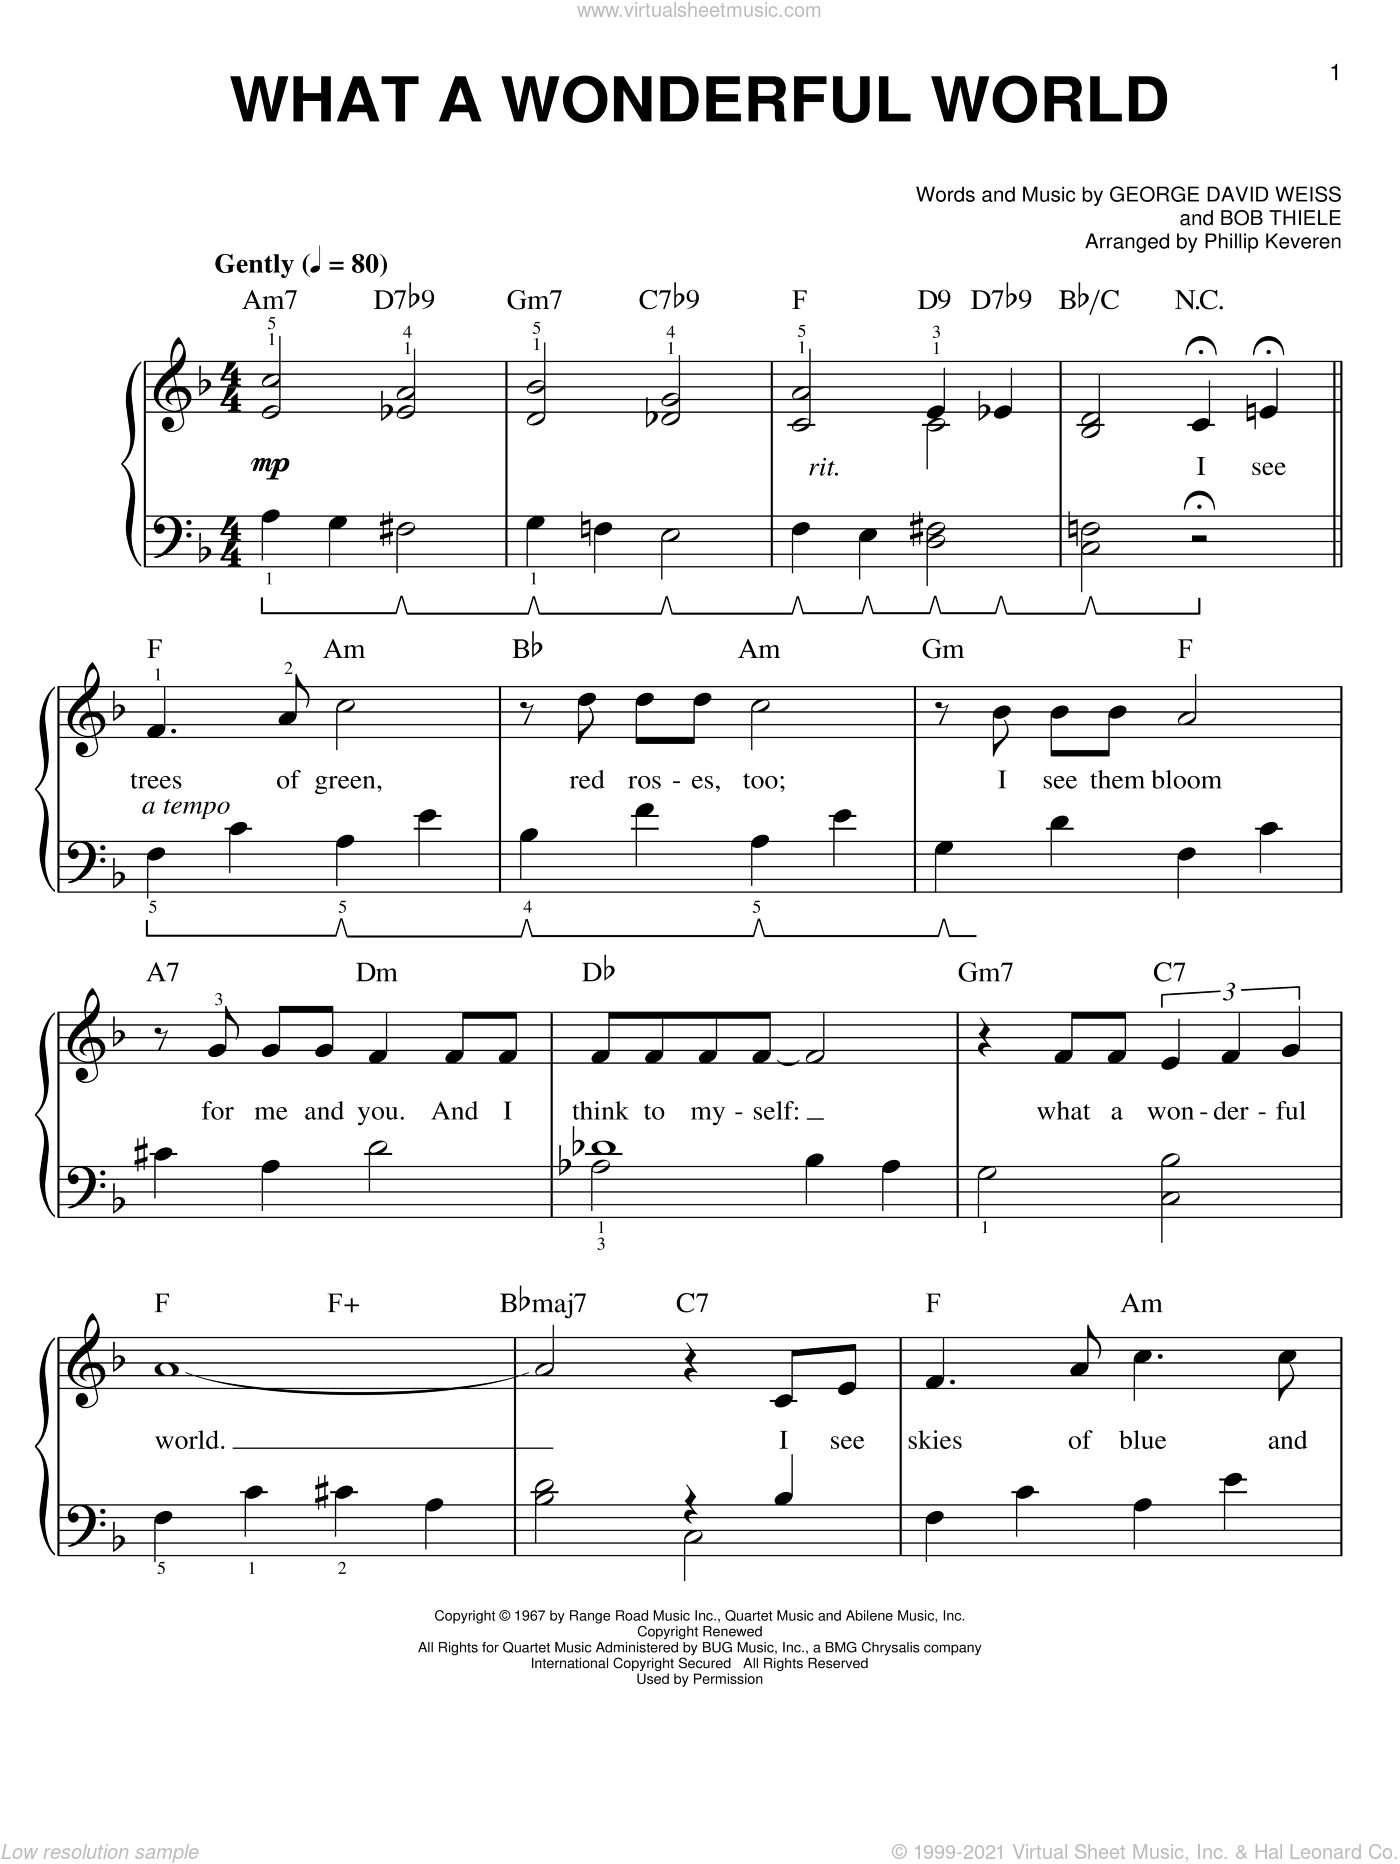 What A Wonderful World sheet music for piano solo by Phillip Keveren, Bob Thiele, George David Weiss and Louis Armstrong, easy skill level